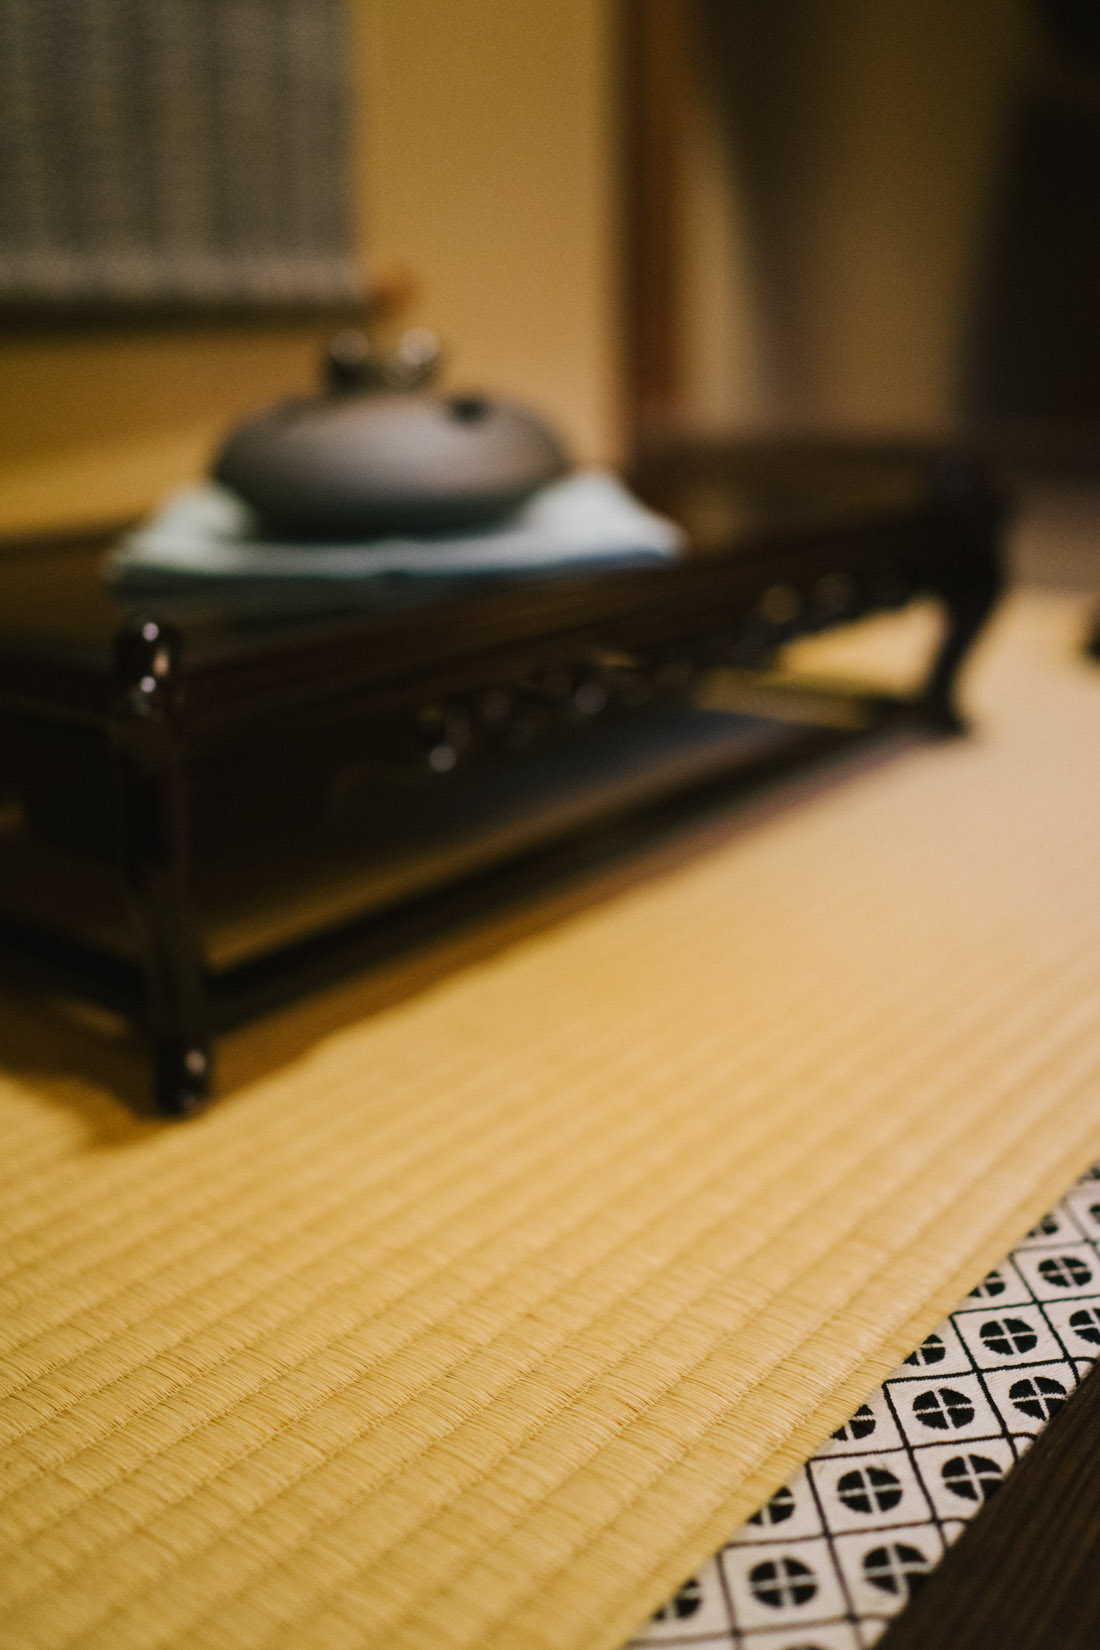 All the details, even the hemming of the tatami mats are exquisite.